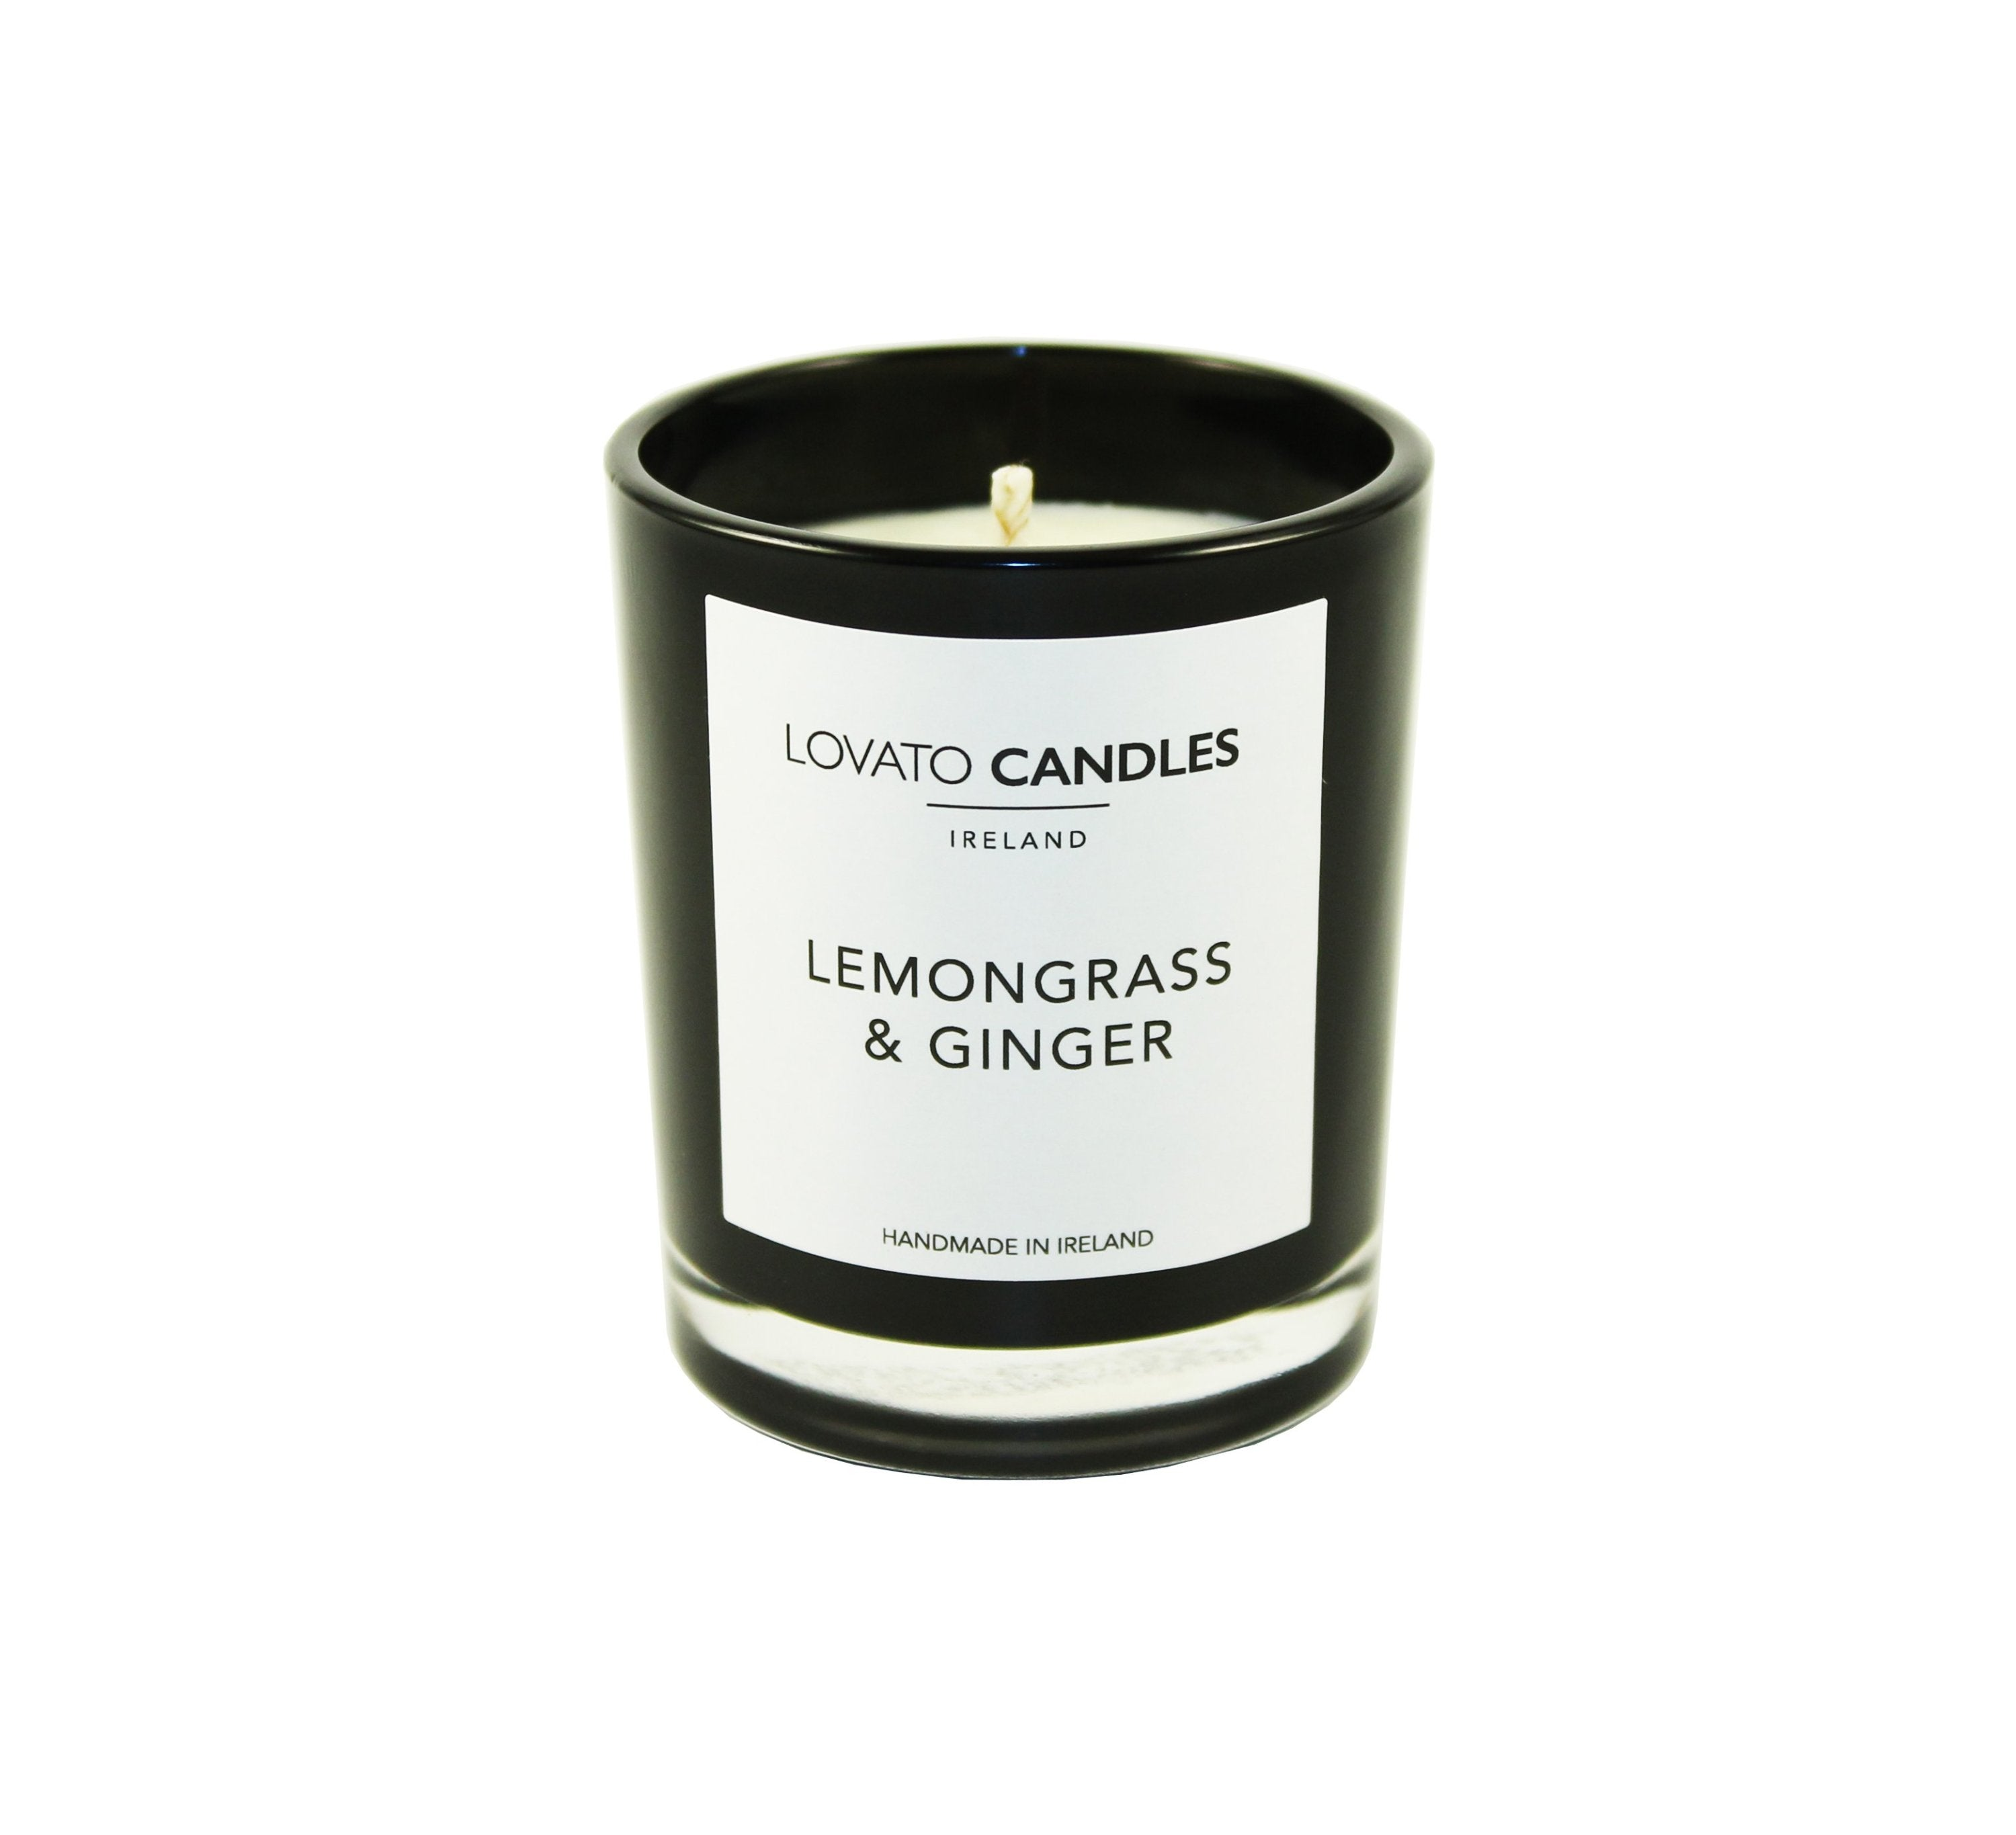 Black Votive Candle - Lemongrass & Ginger - Lovato Candles